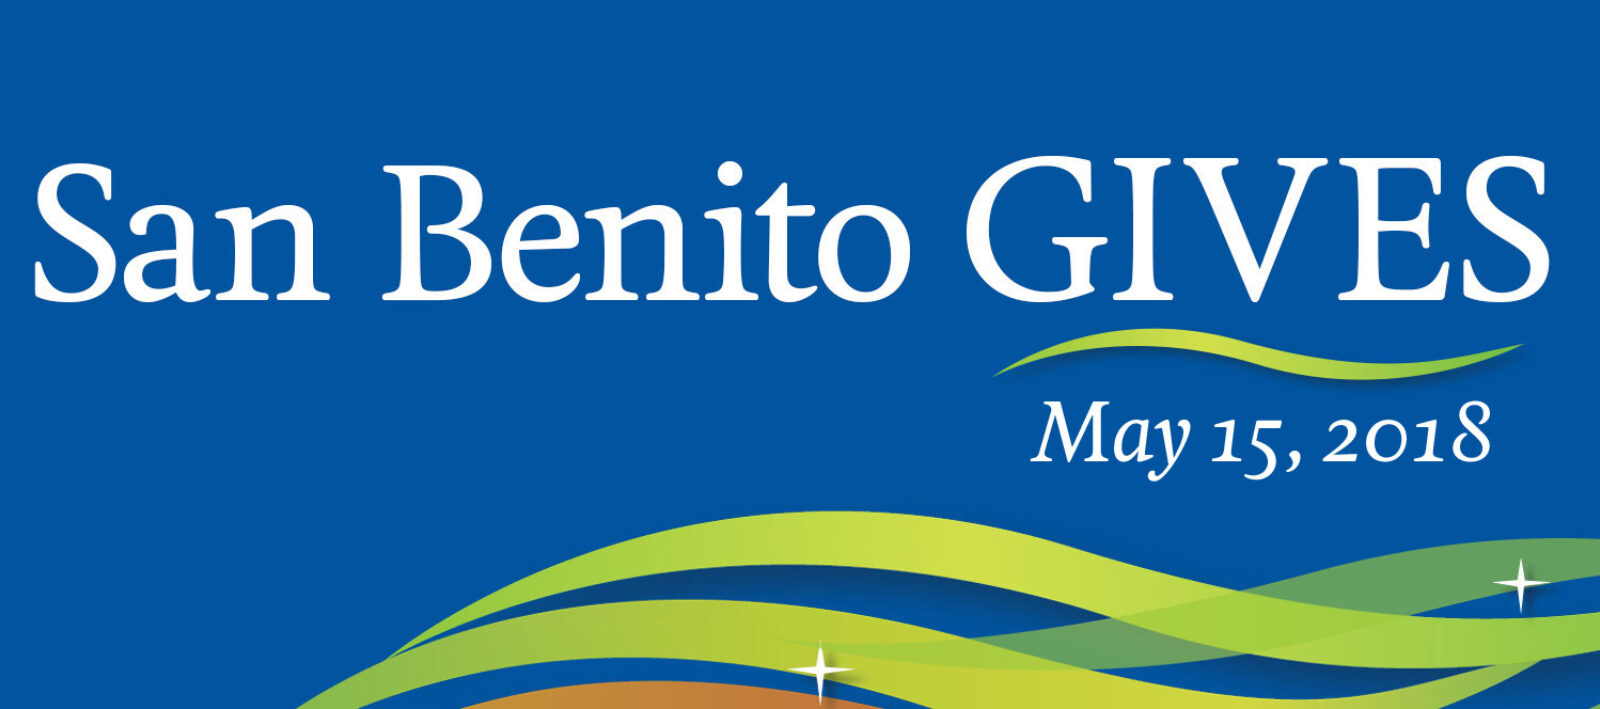 San Benito GIVES 2018 is Going to Be Huge!